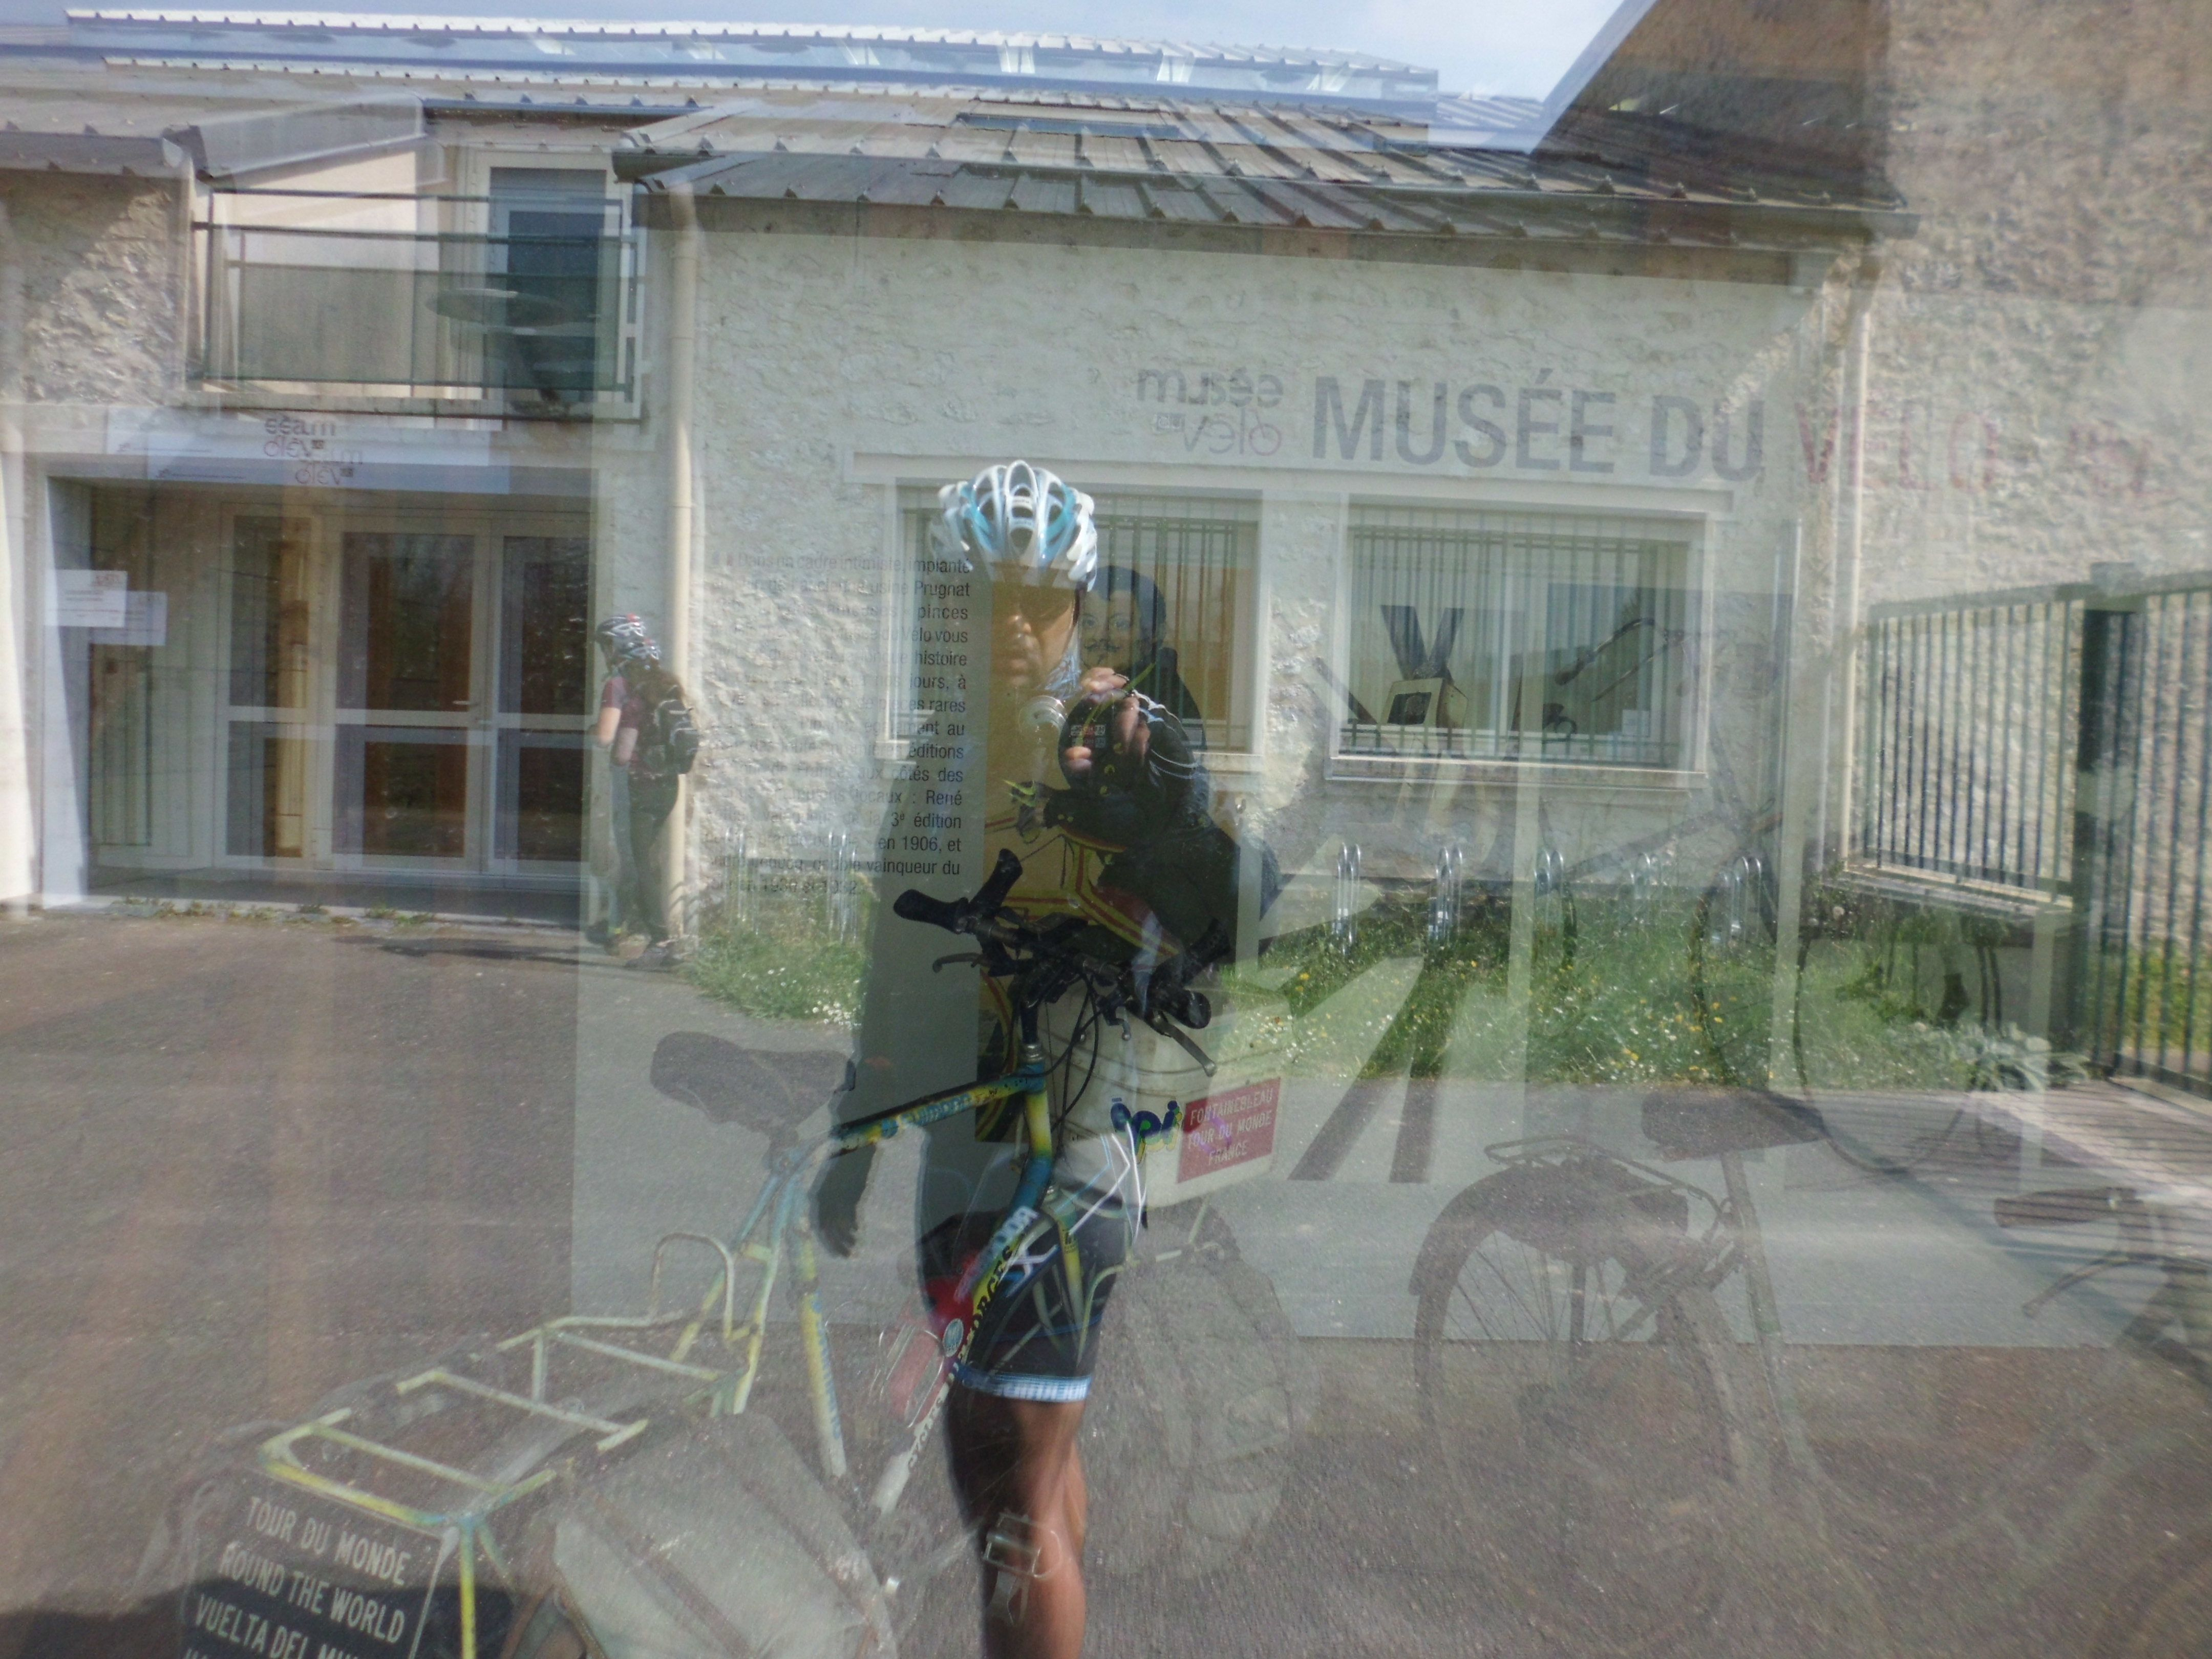 cycle museum at Moret-sur-Loing